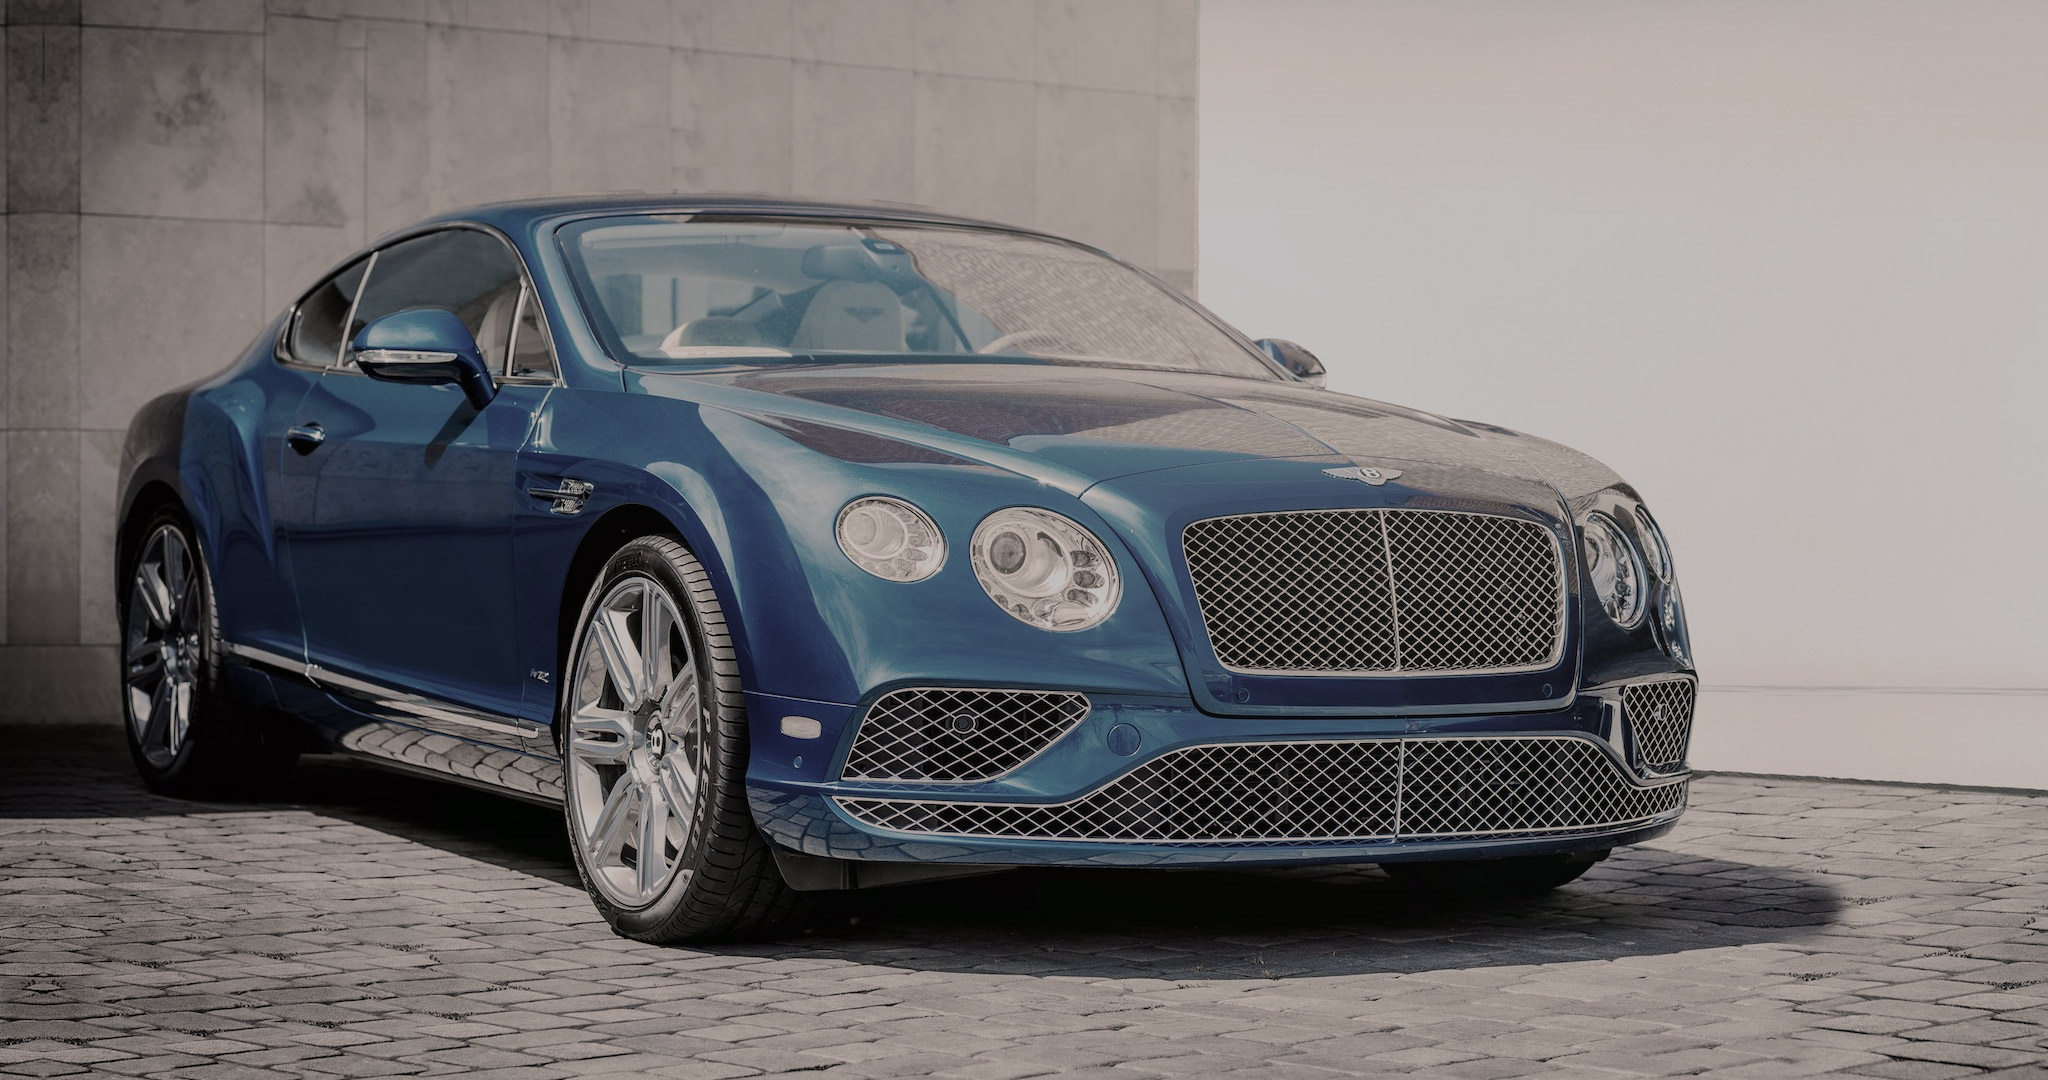 spur aaa gt car flying rental sport new continental rent hire bentley luxury